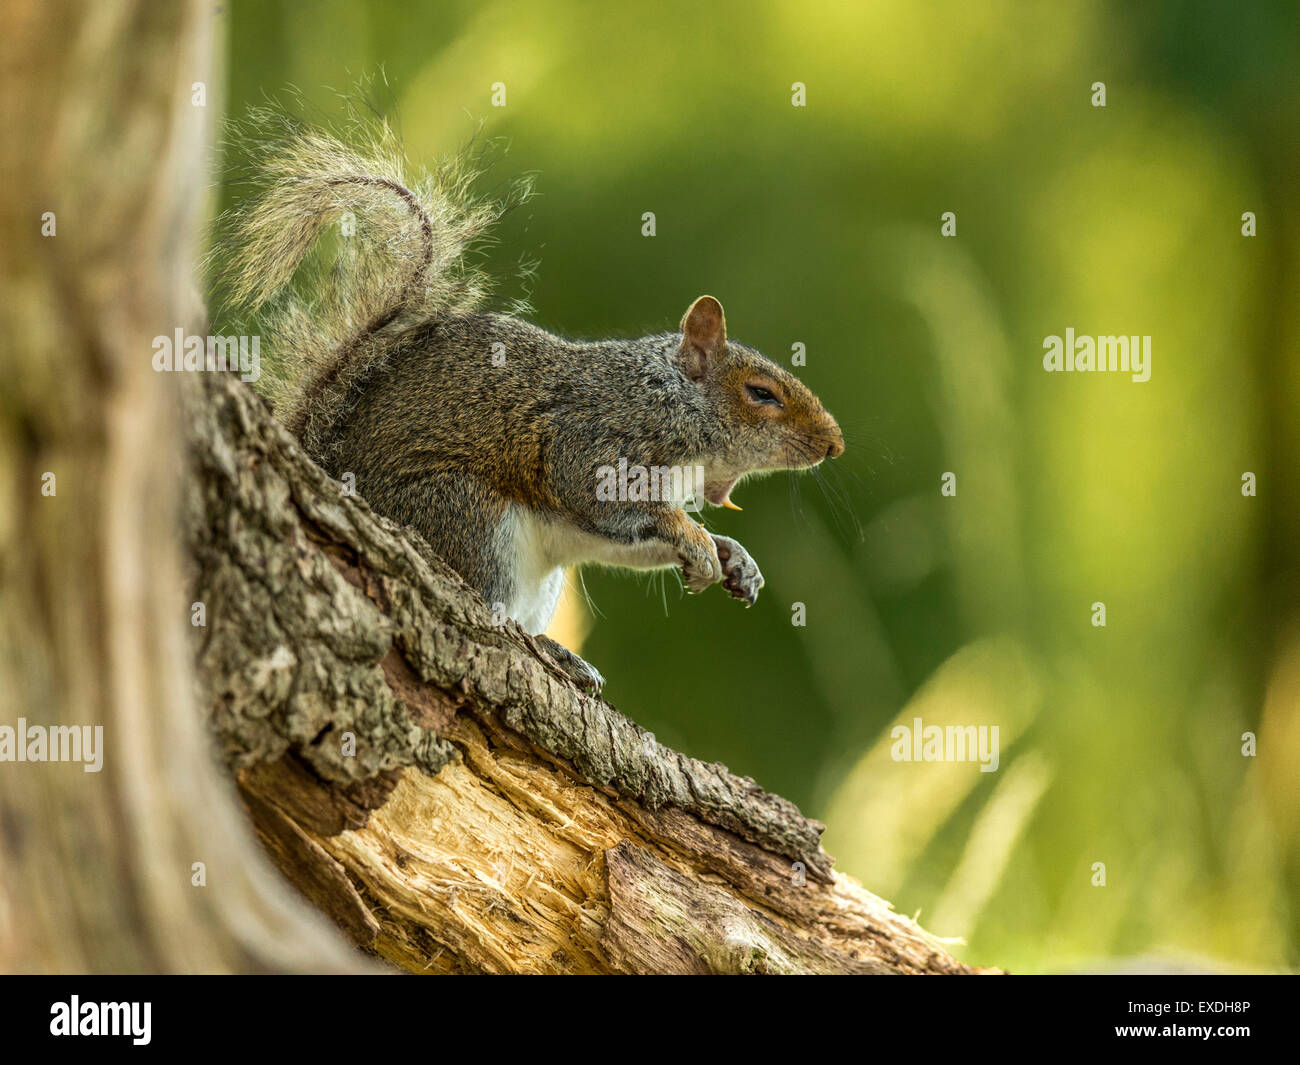 Single Grey Squirrel (Sciurus carolinensis) foraging in natural woodland countryside setting. Yawning, bare teeth, - Stock Image